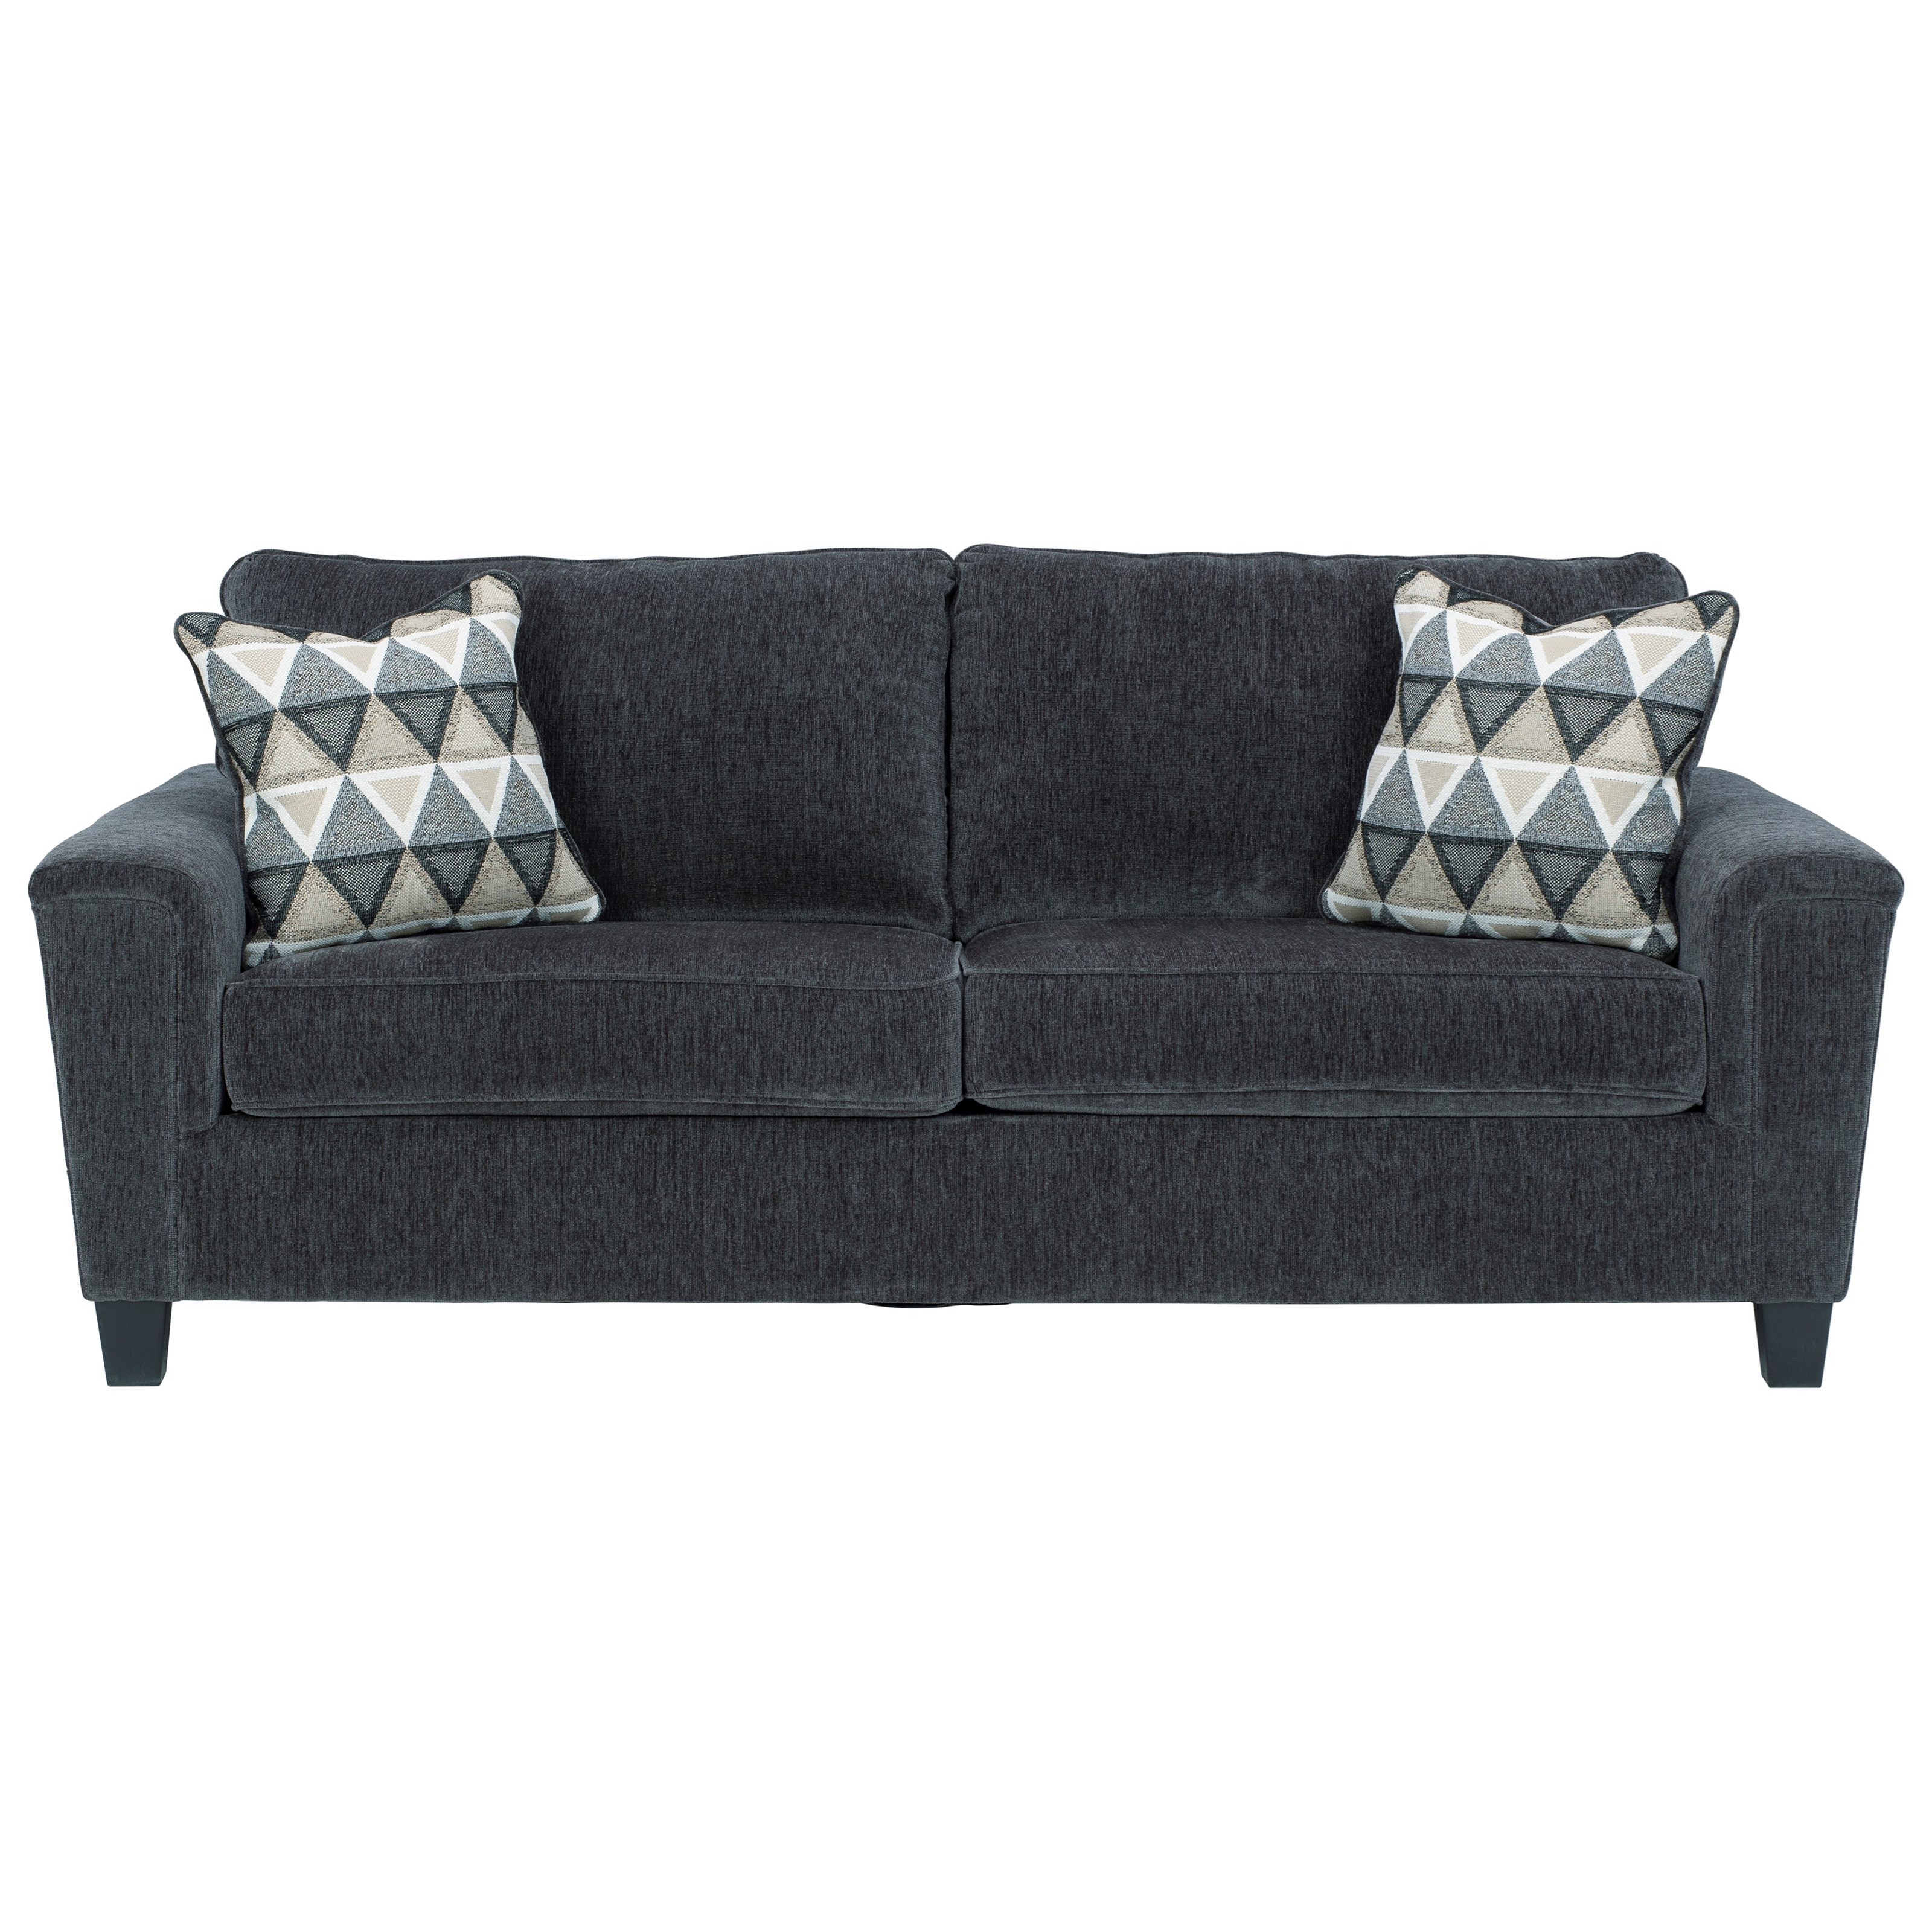 Abinger Queen Sofa Sleeper by Benchcraft at Virginia Furniture Market